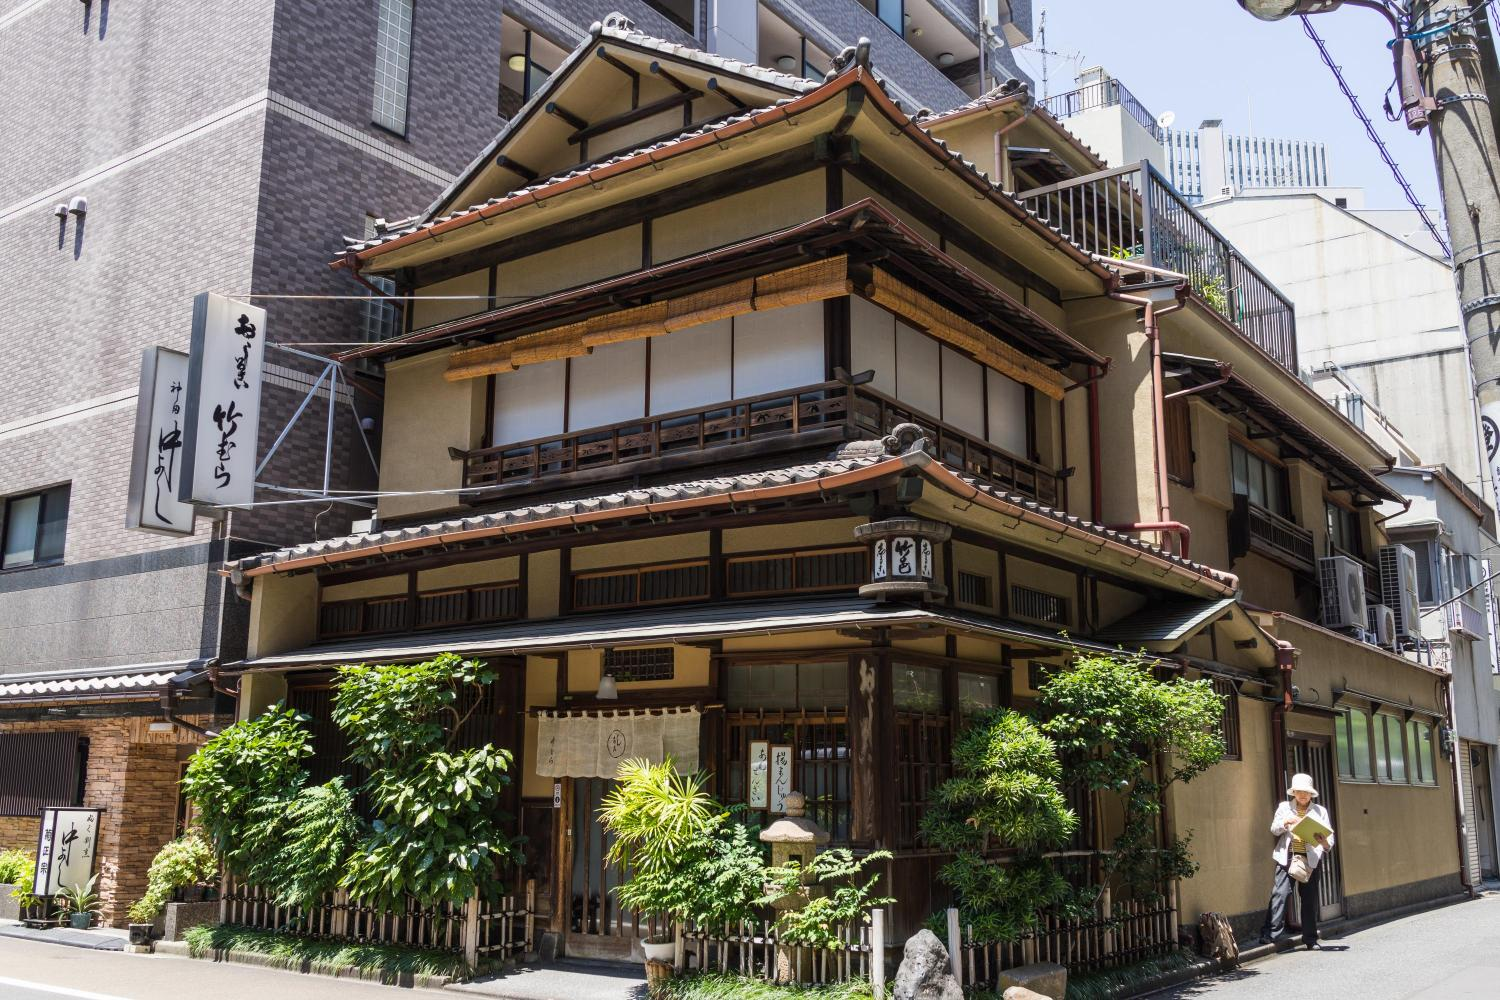 Kanda A Town Of Common People Since The Edo Period